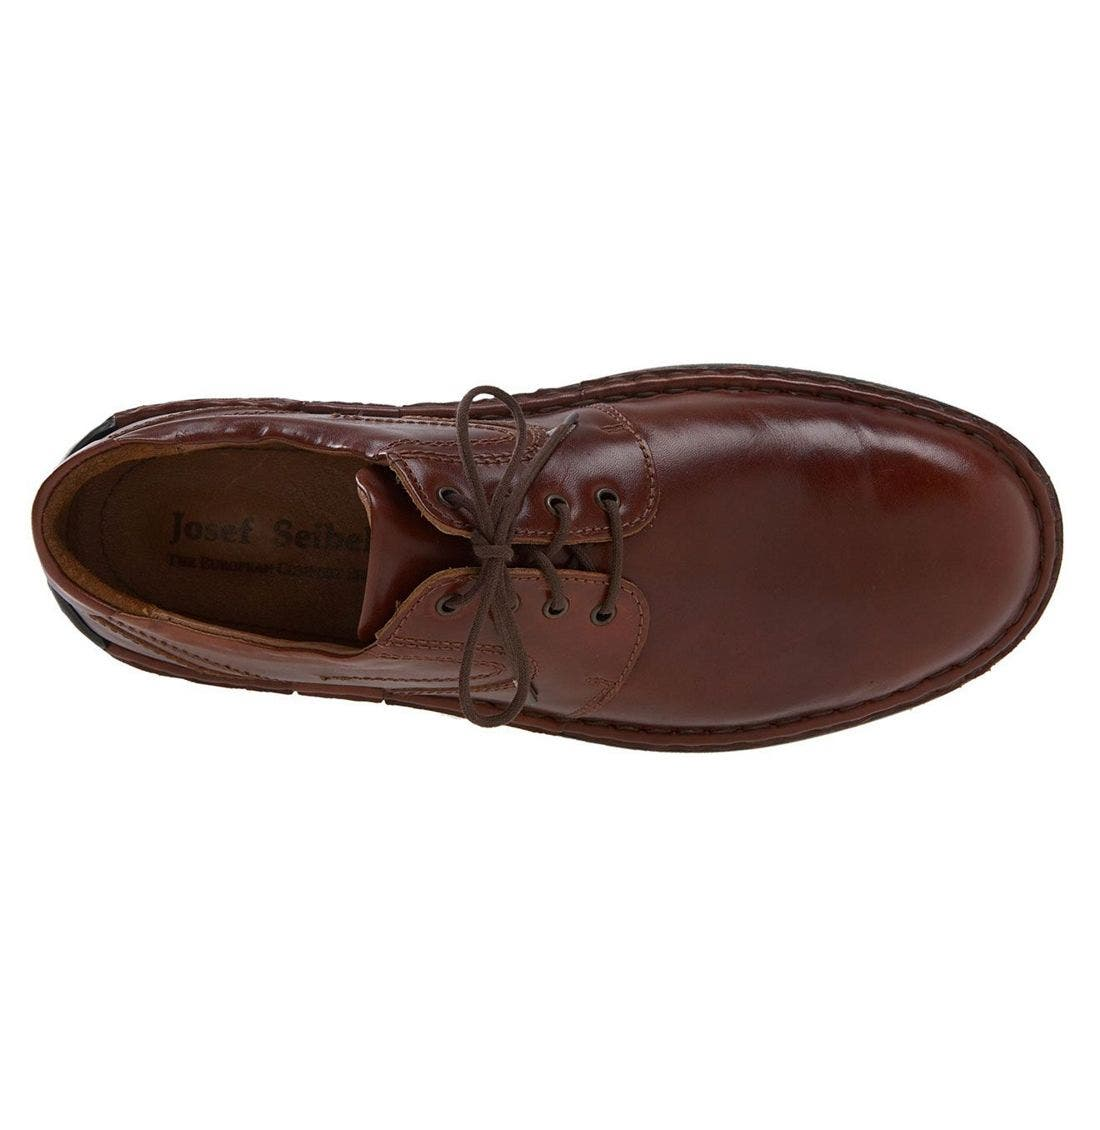 Alternate Image 2  - Josef Seibel 'Walt' Casual Oxford